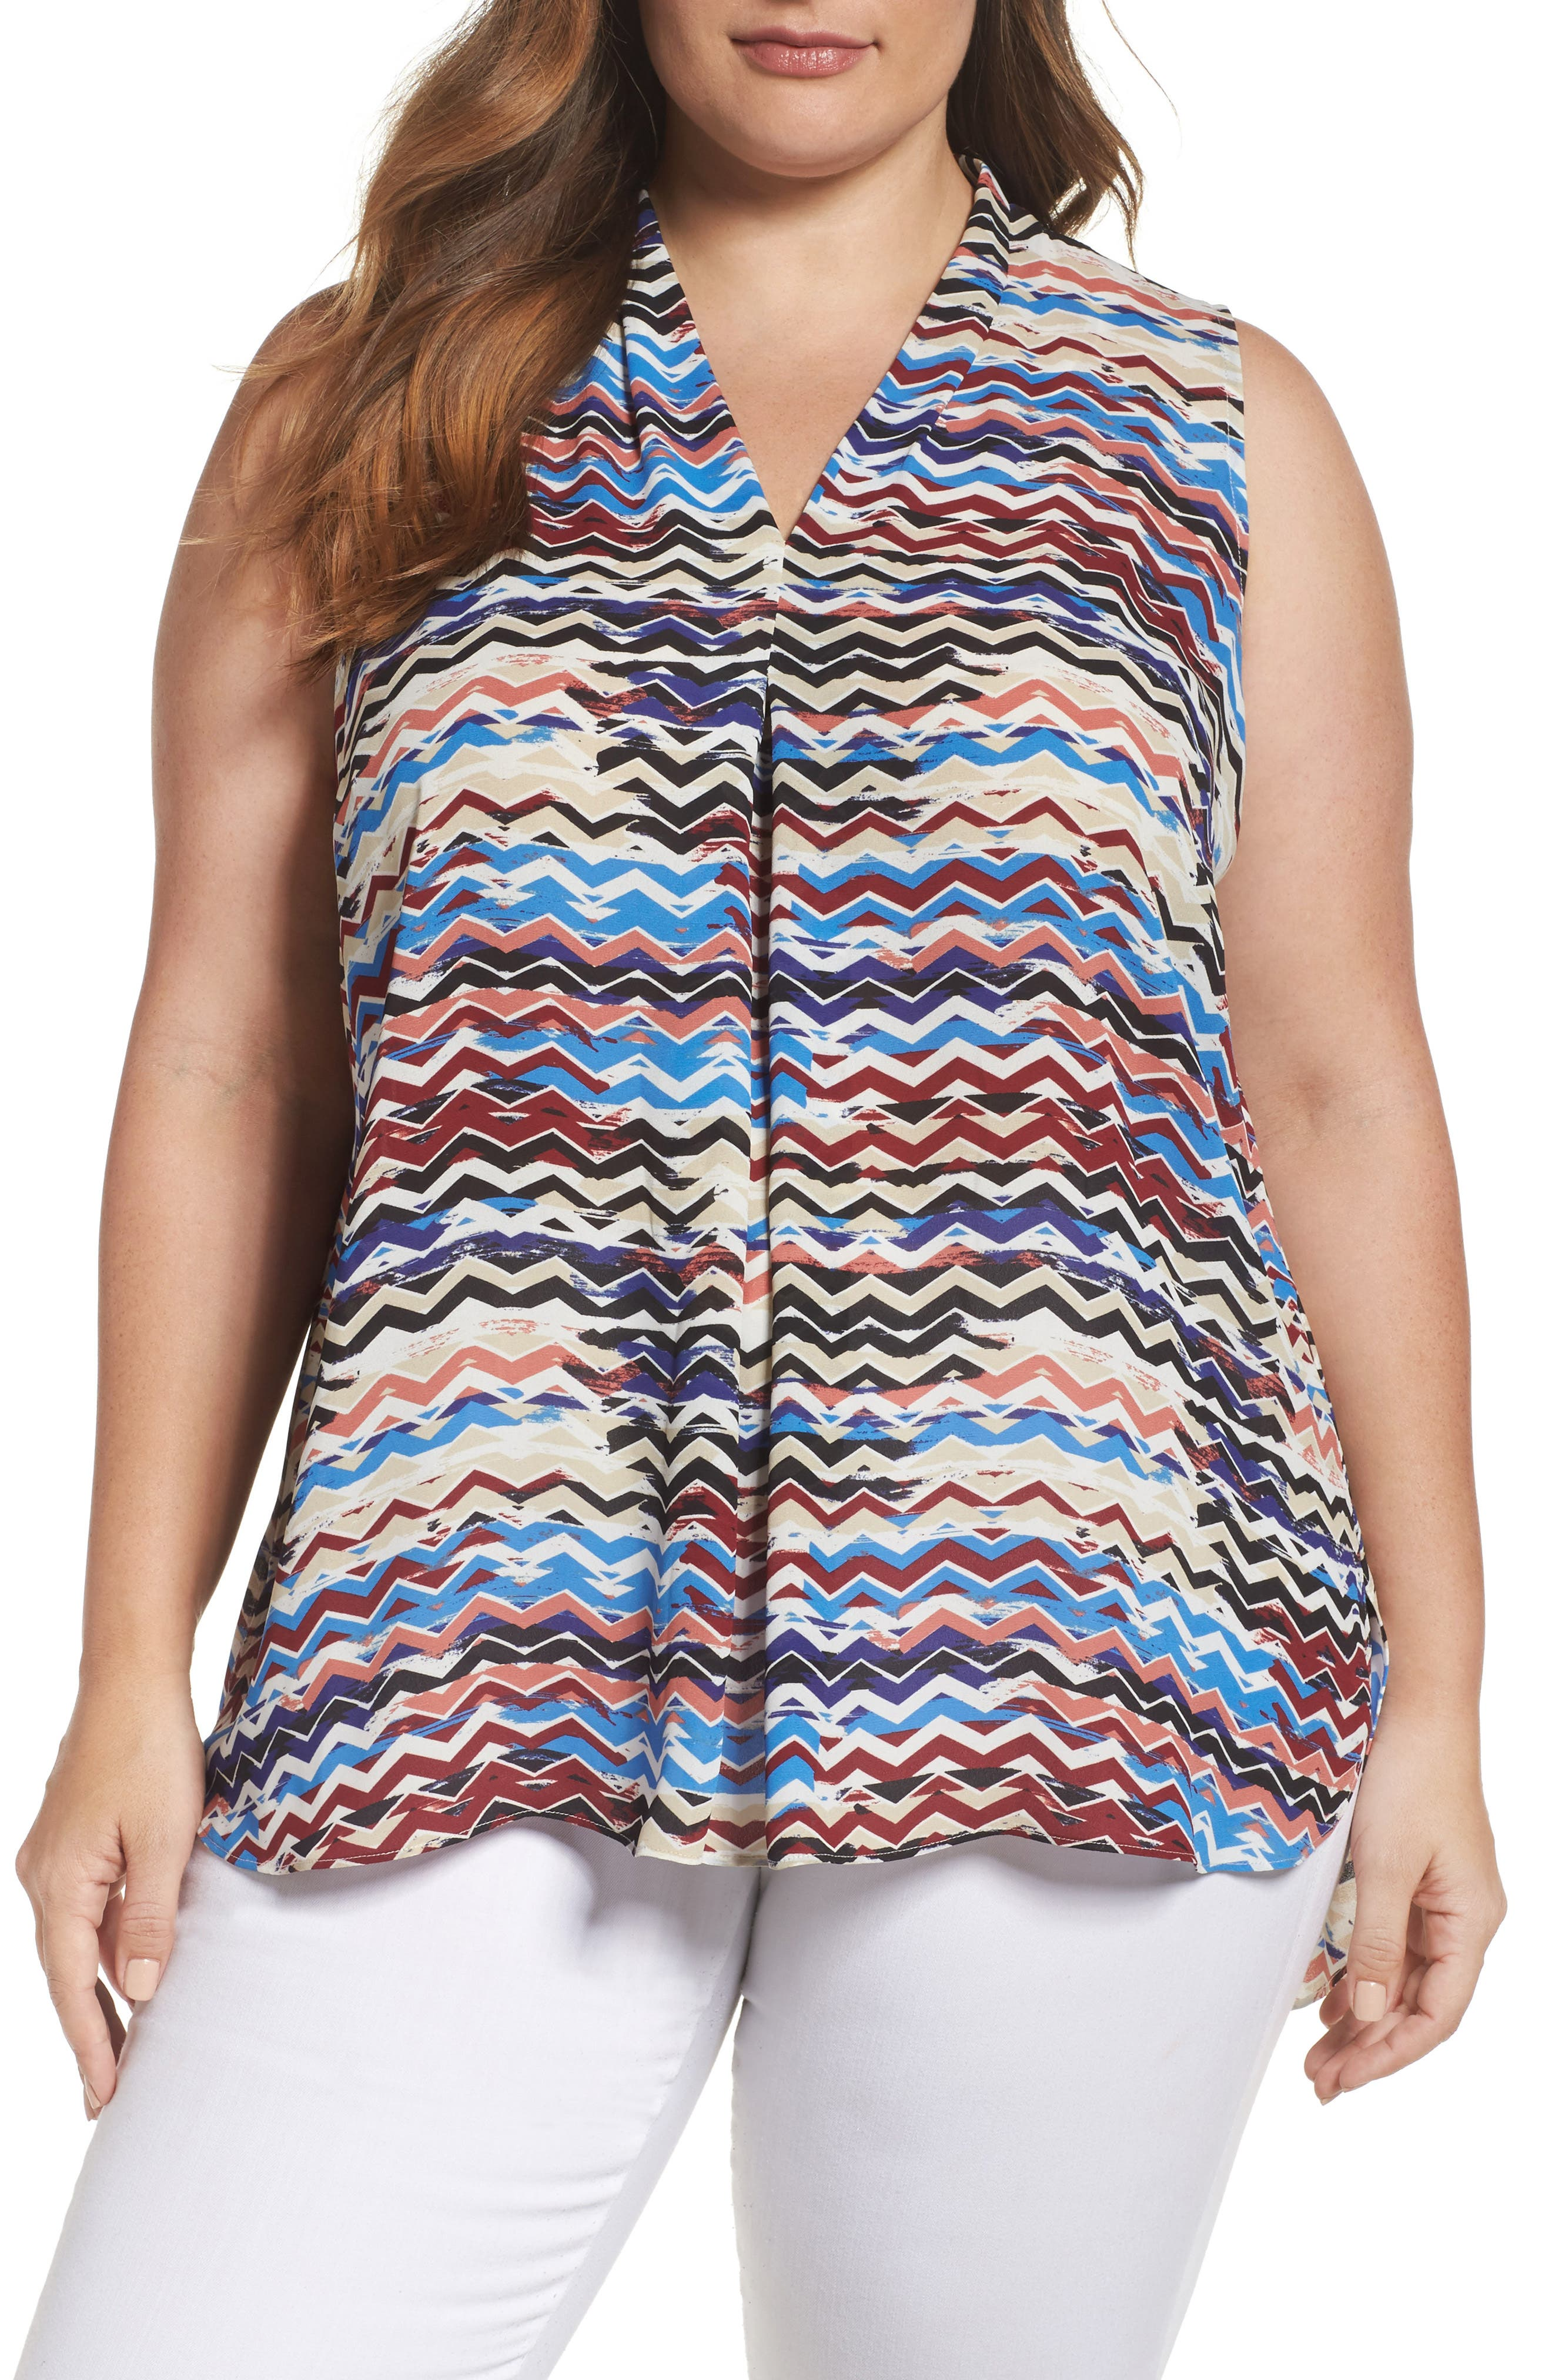 Main Image - Vince Camuto Herringbone Muses Pleat Front Top (Plus Size)